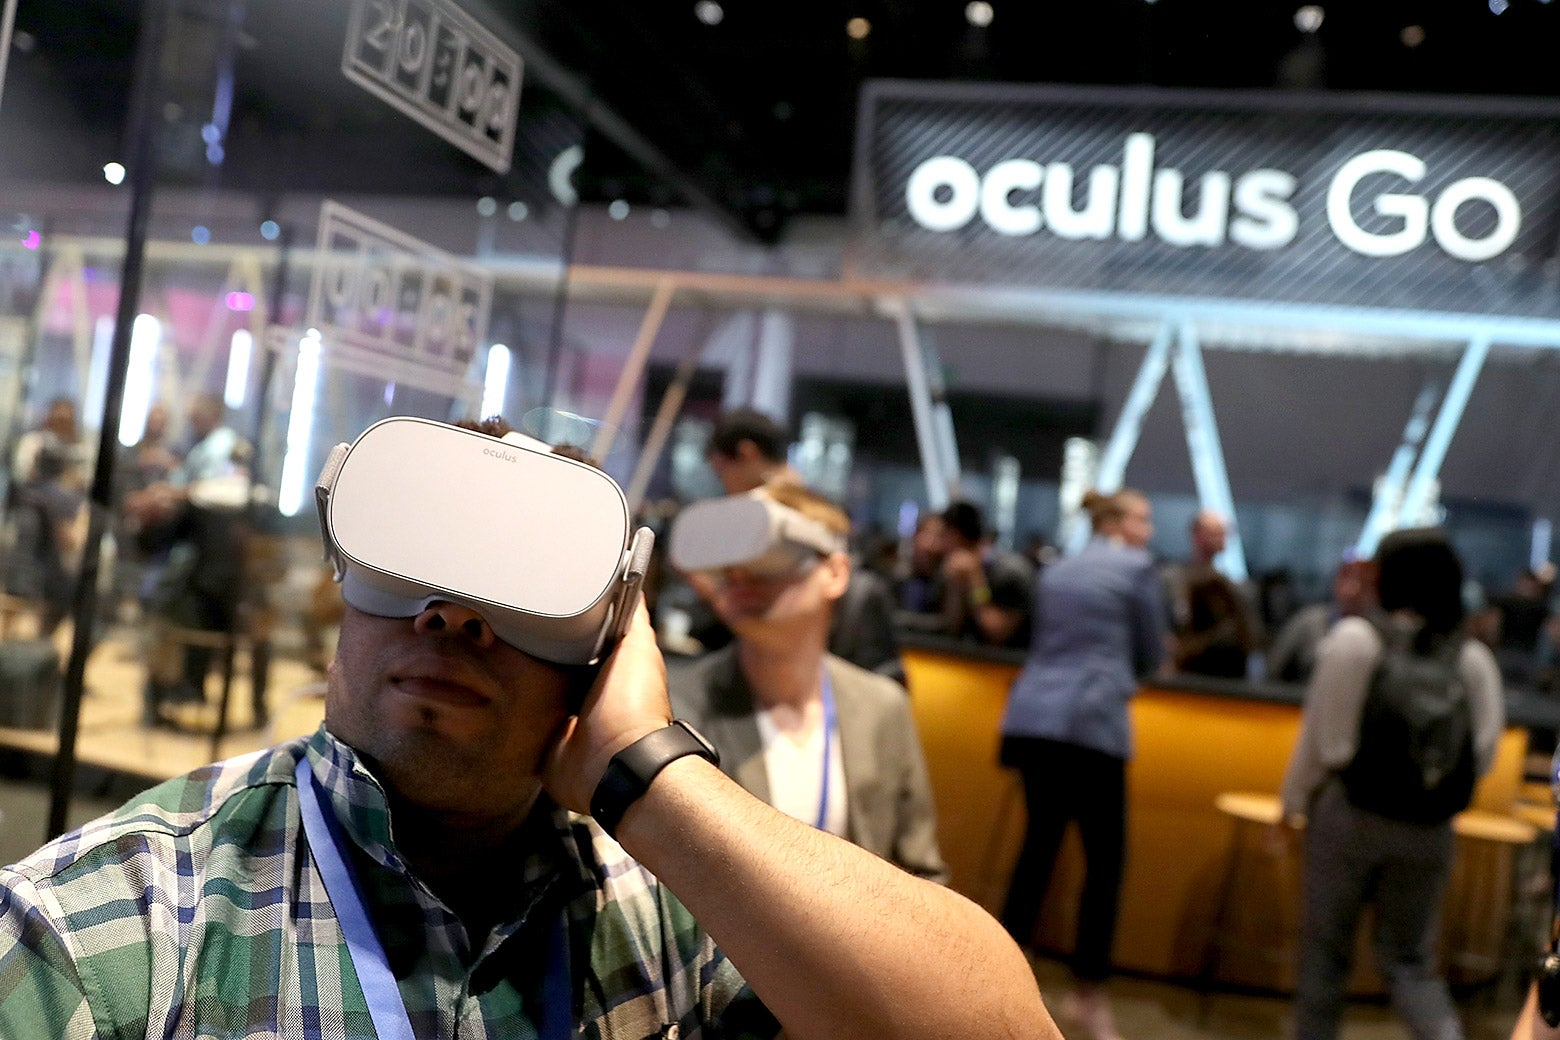 Attendees use the Oculus Go virtual reality headset during the F8 Facebook developers conference on Tuesday in San Jose, California.